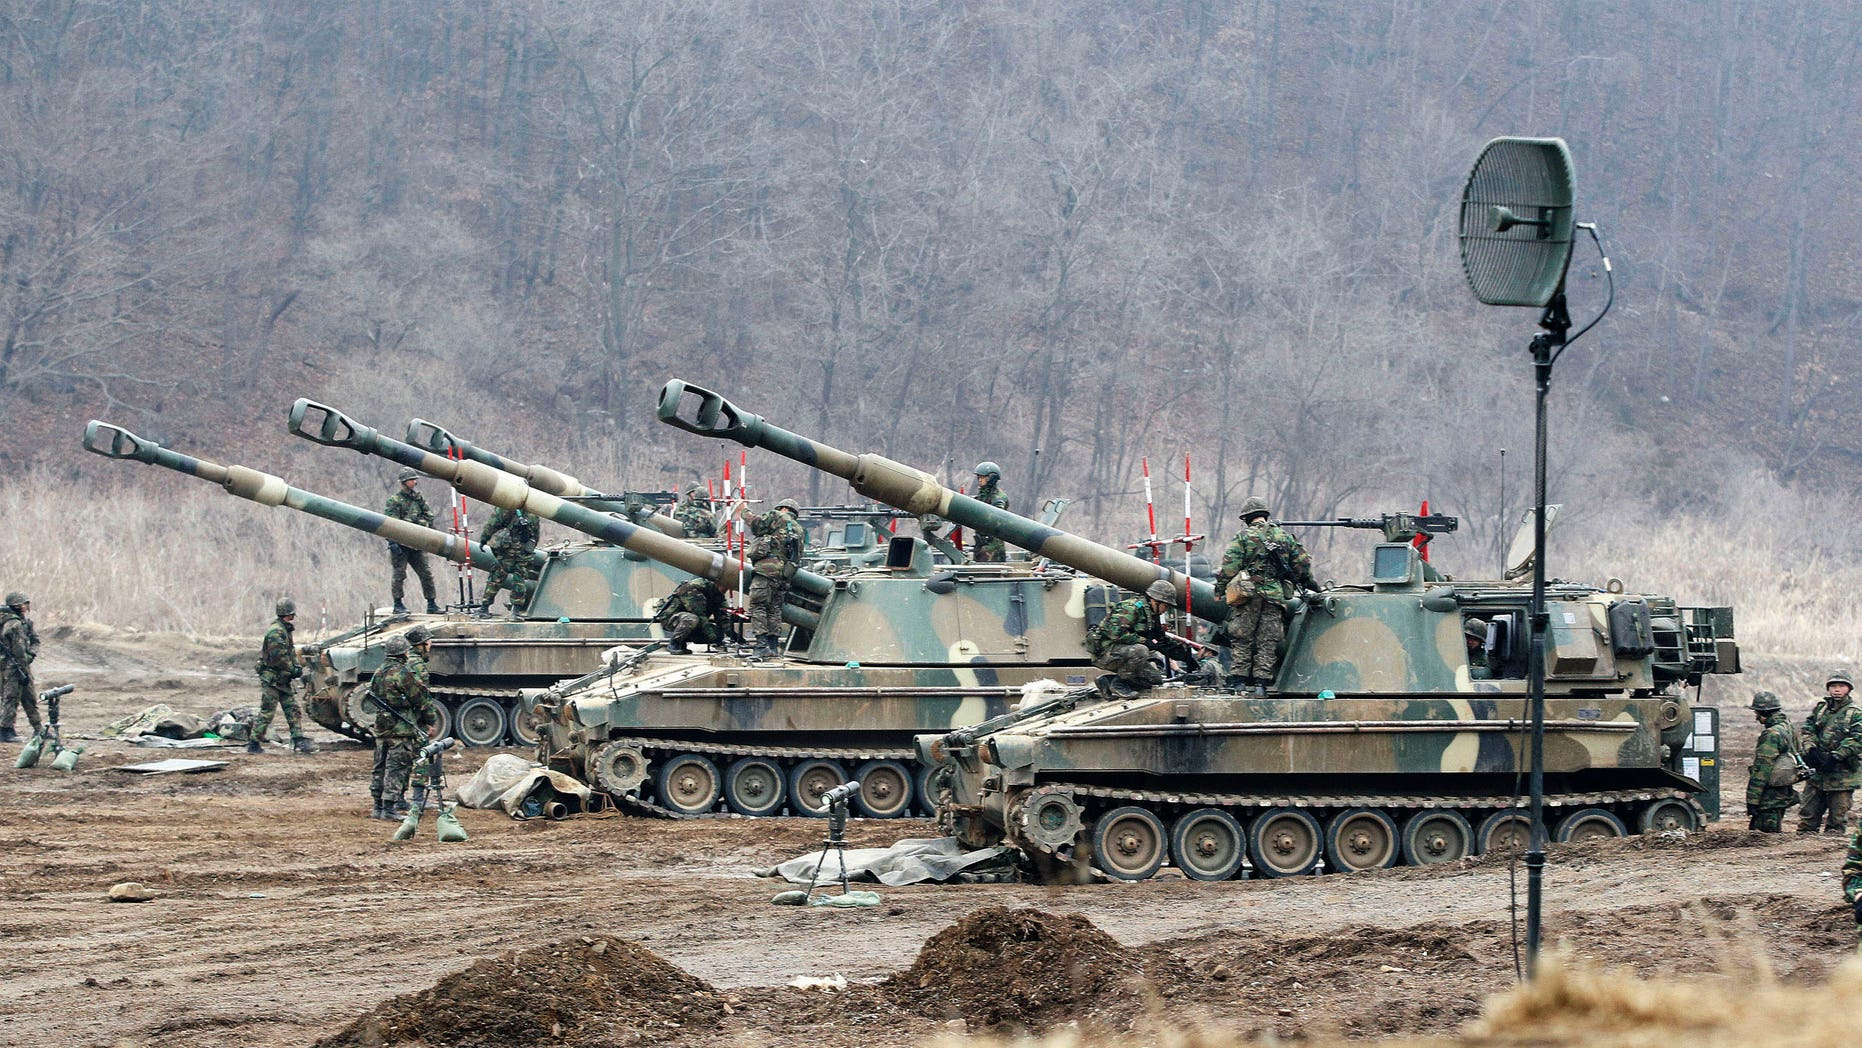 March 7, 2013 - South Korean soldiers work on their K-9 self-propelled artillery vehicles during an exercise against possible attacks by North Korea near the border village of Panmunjom in Paju, South Korea.